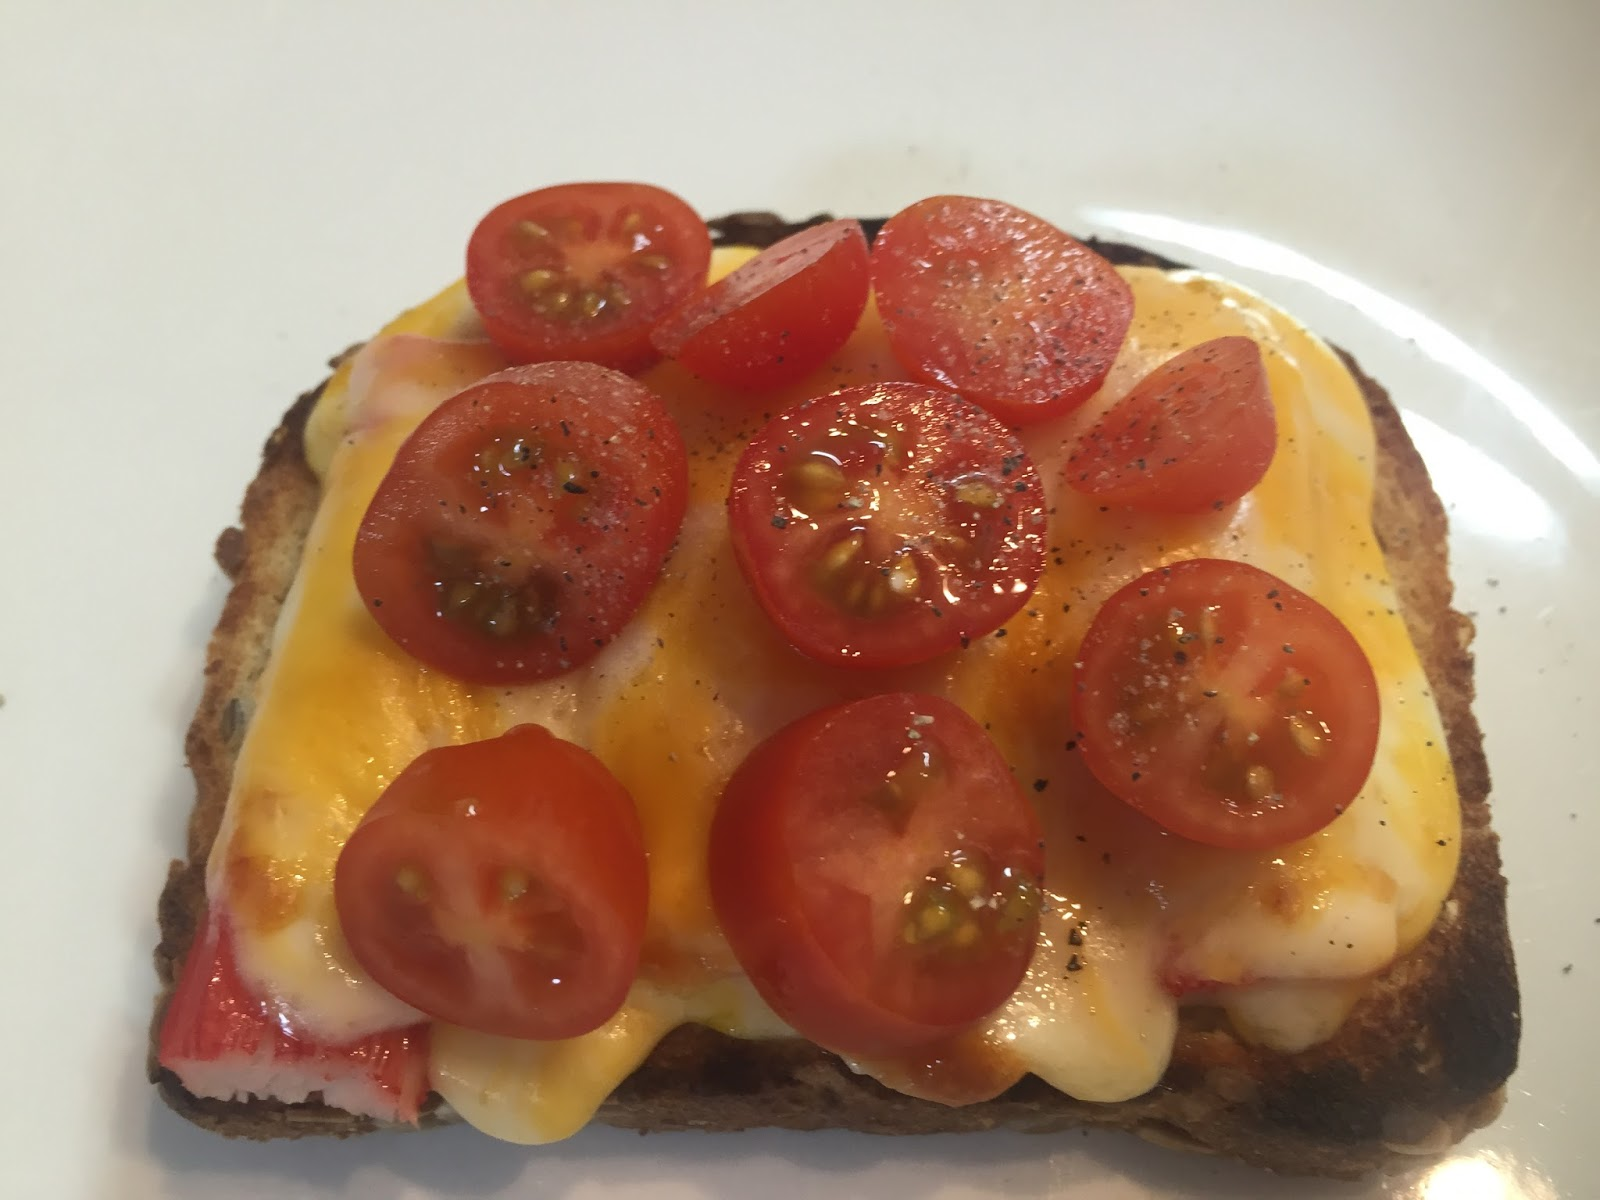 Crab, Cheese, and Tomato Sandwich